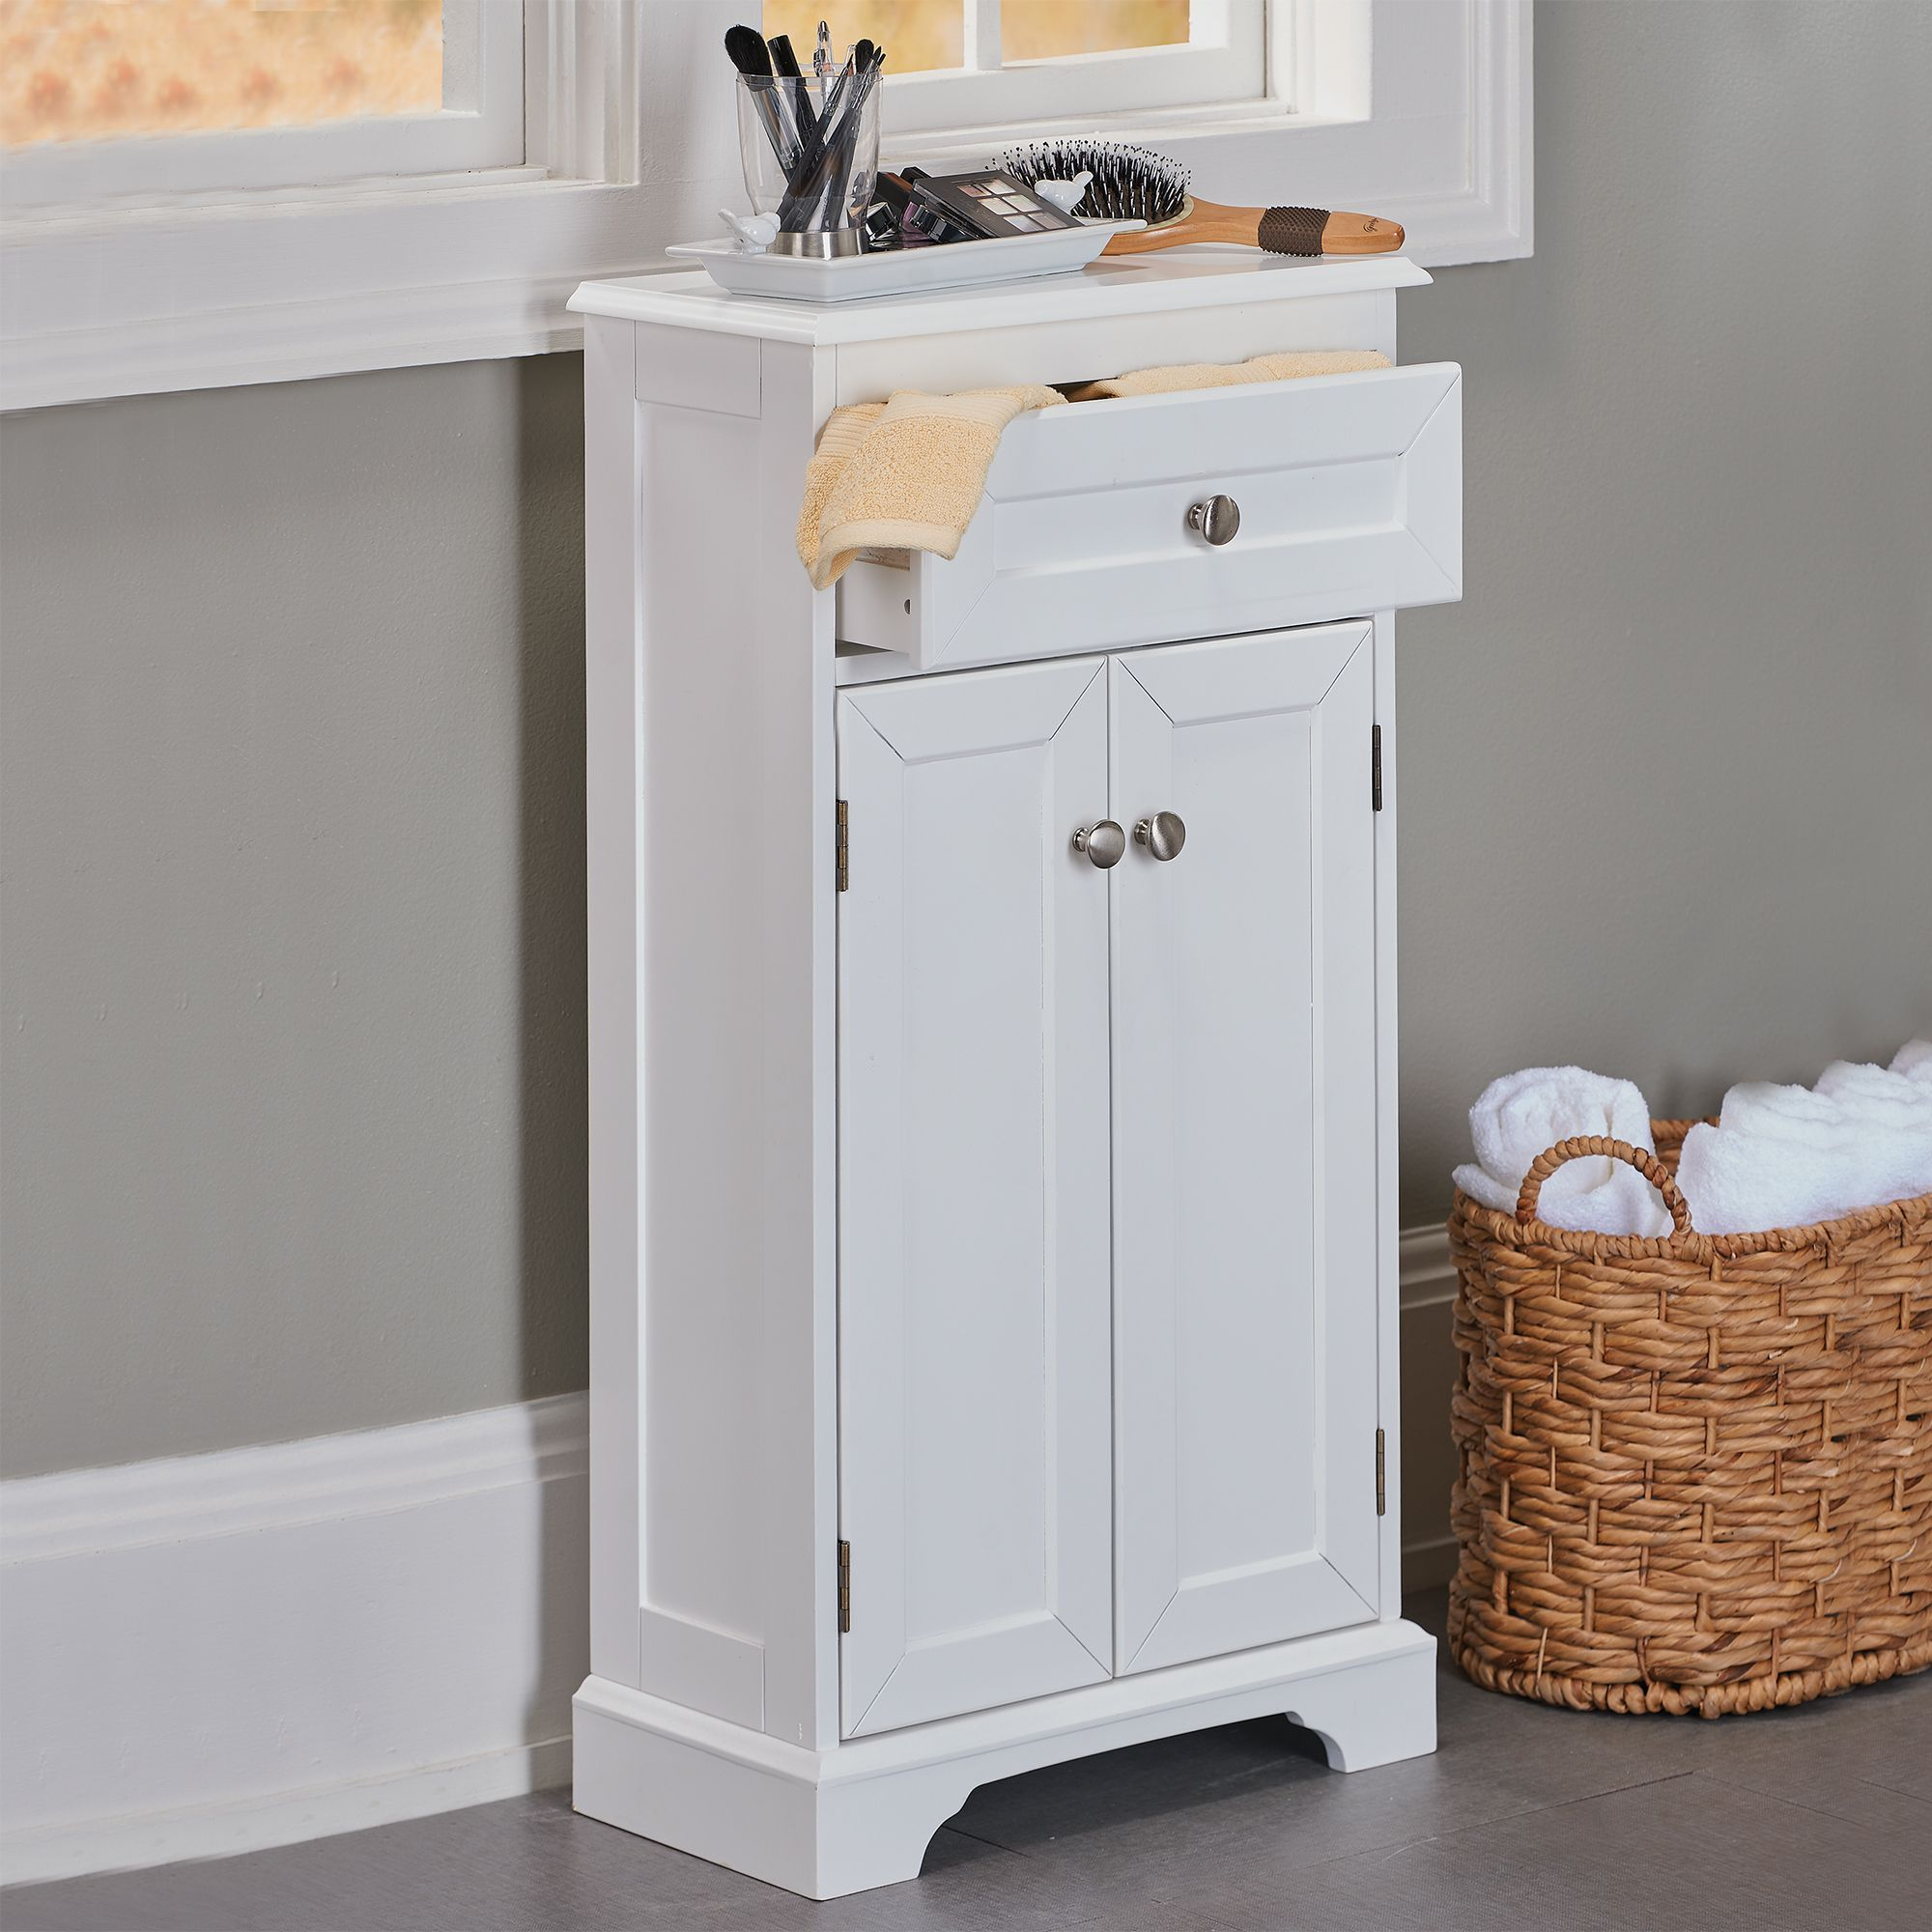 Weatherby White Bathroom Cabinet – Its Slim Design and Small